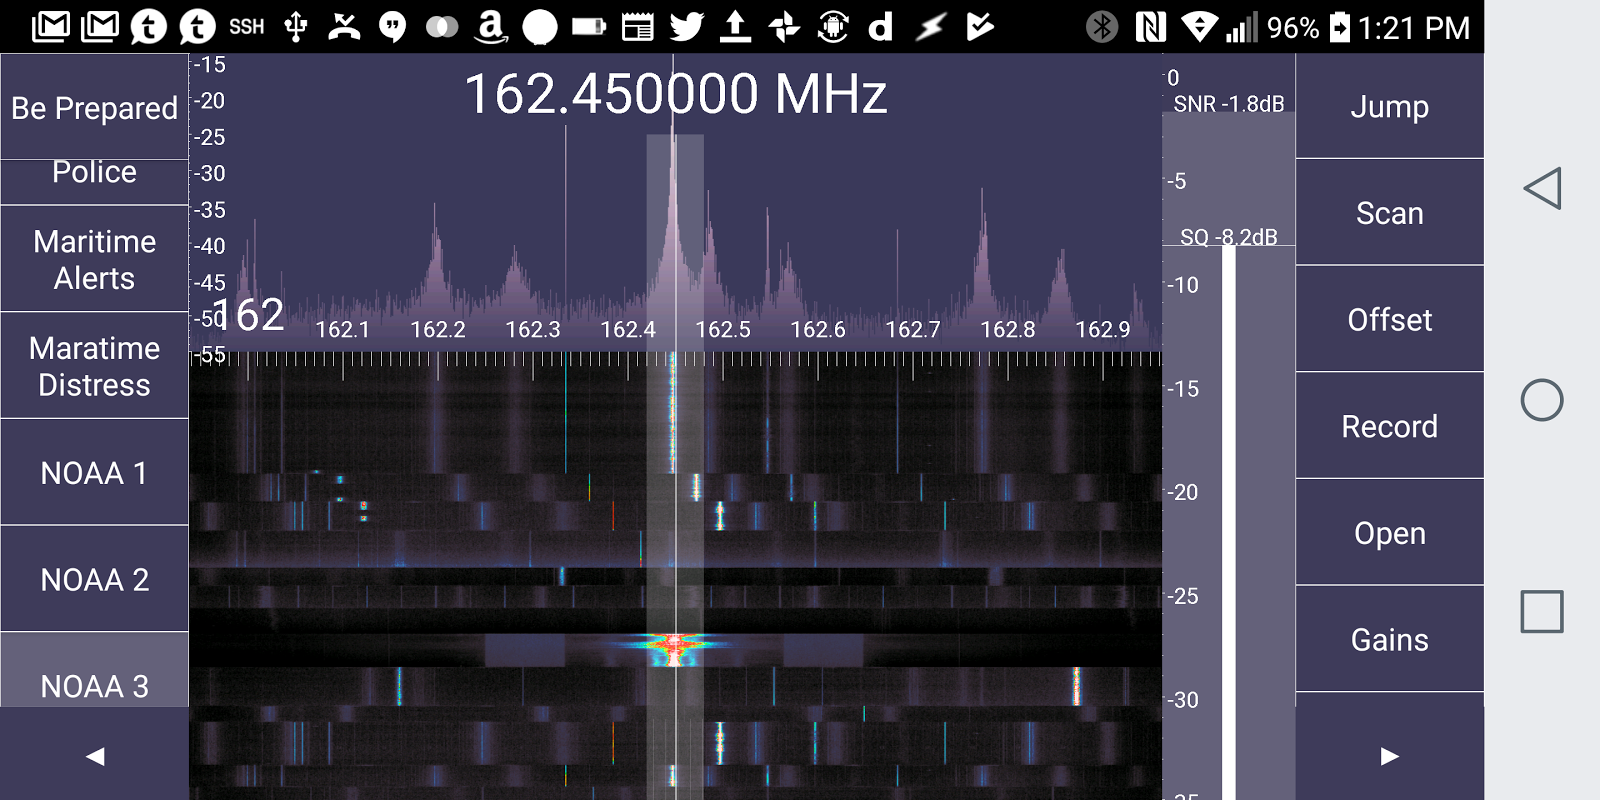 Using Google Sheets to Manage SDR Touch     - Ben's Journal